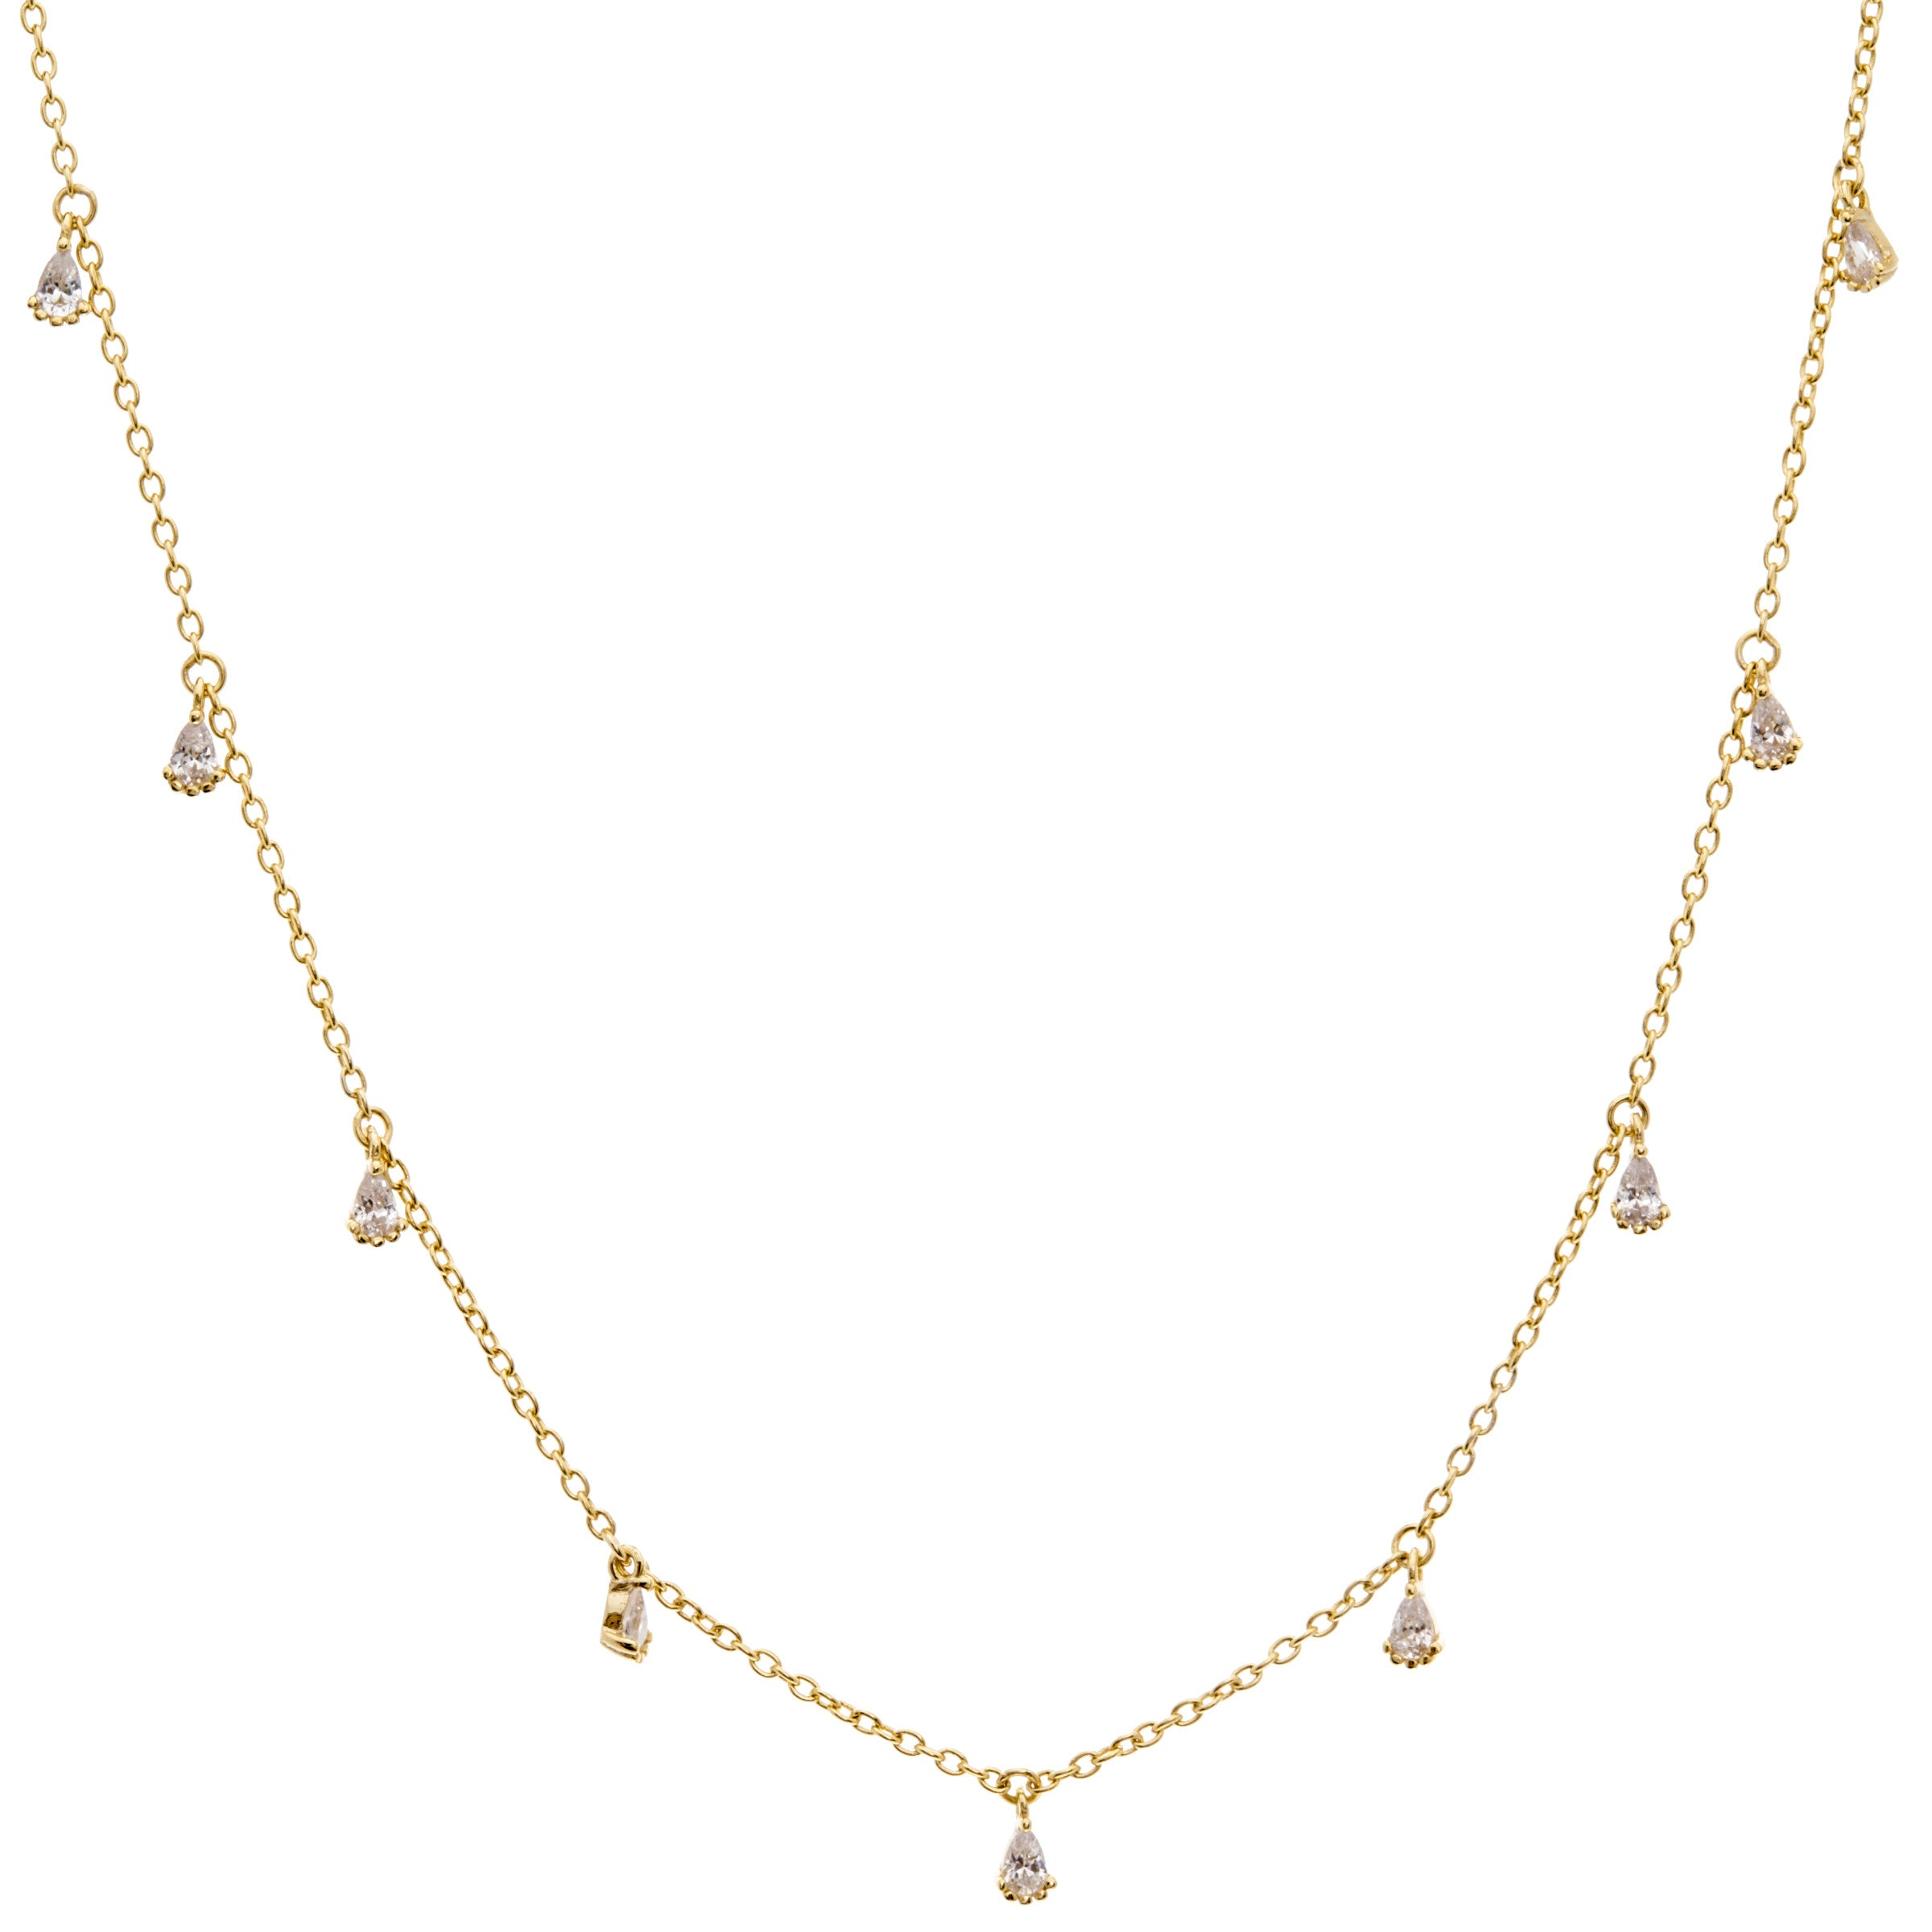 Claud Gold Teardrop Necklace